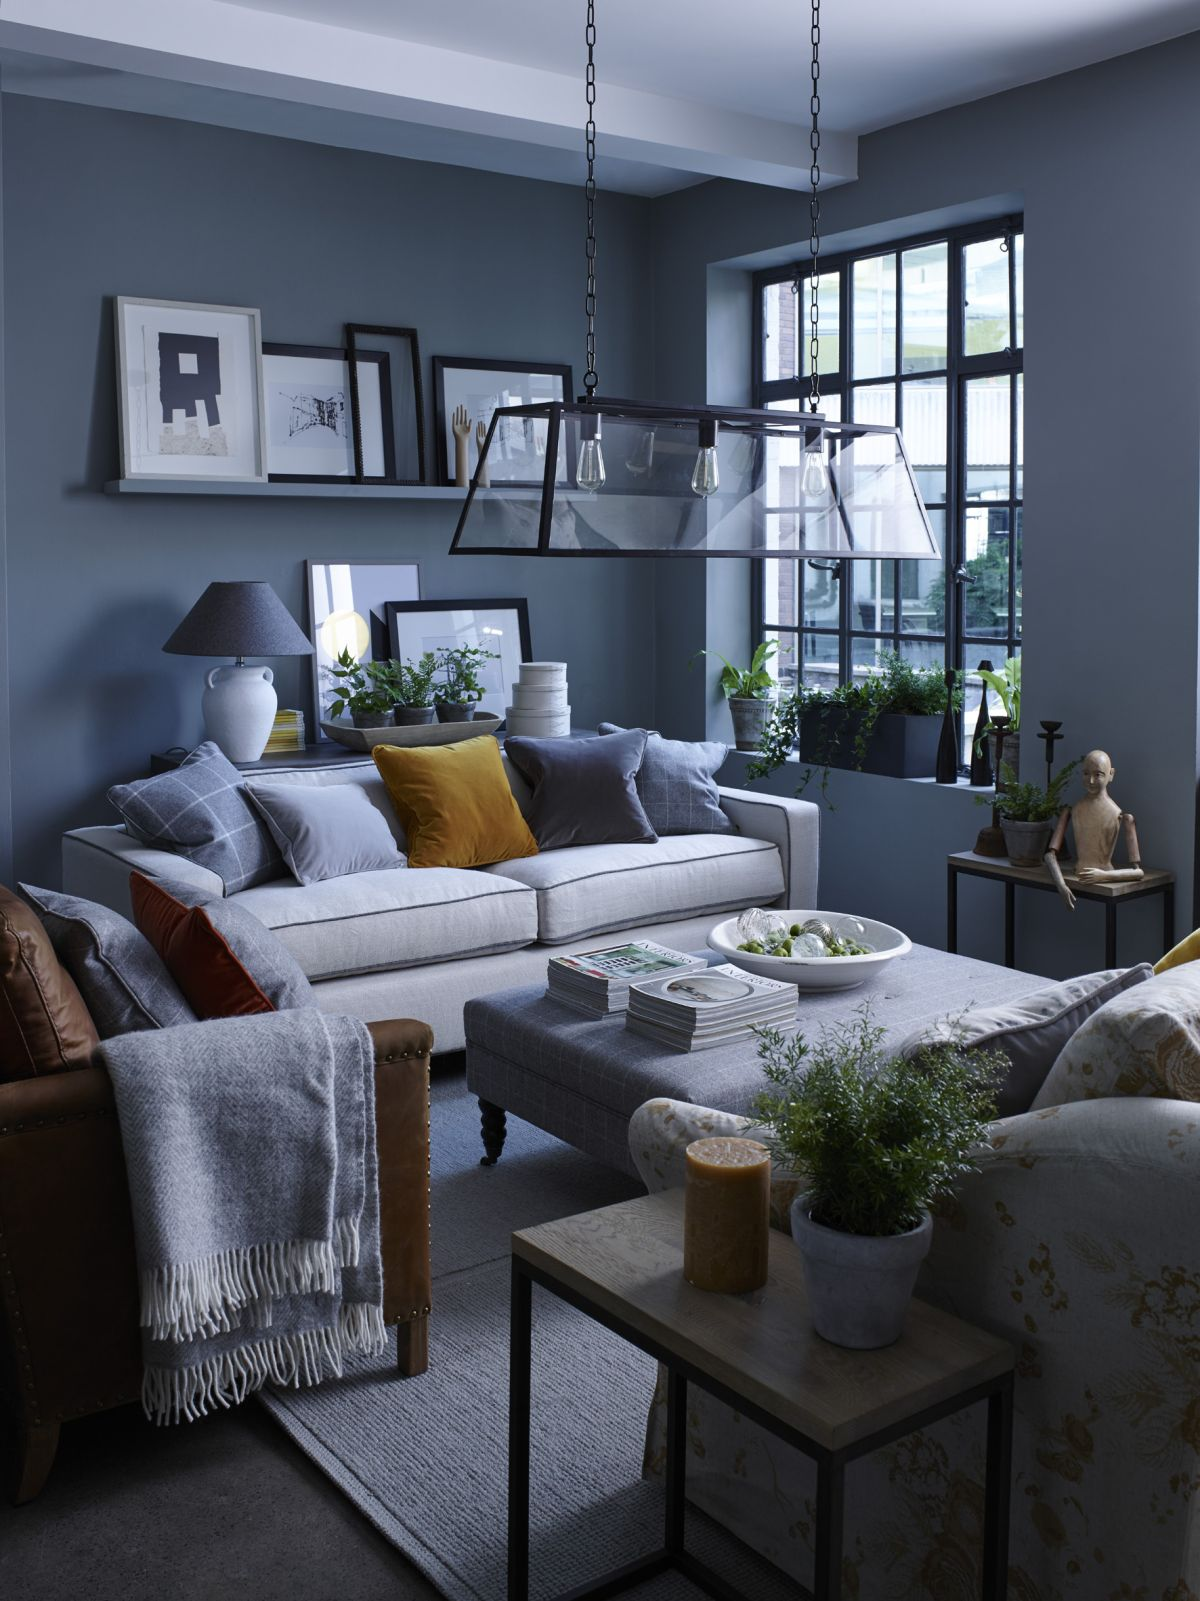 11 Blue And Grey Living Room Ideas To Bring This Dreamy Combo Into Your Home Real Homes